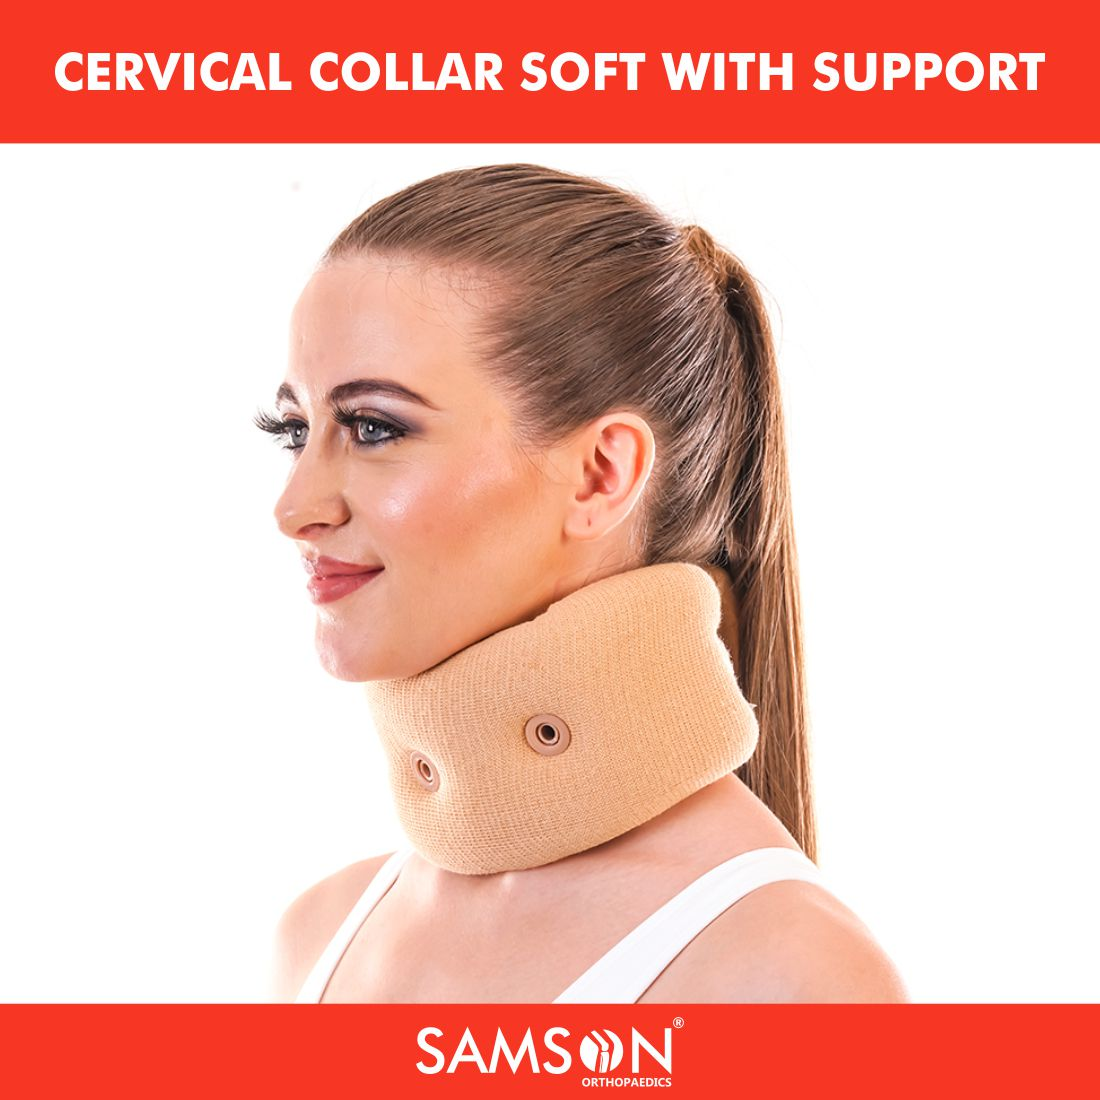 CERVICAL SUPPORT BRACES